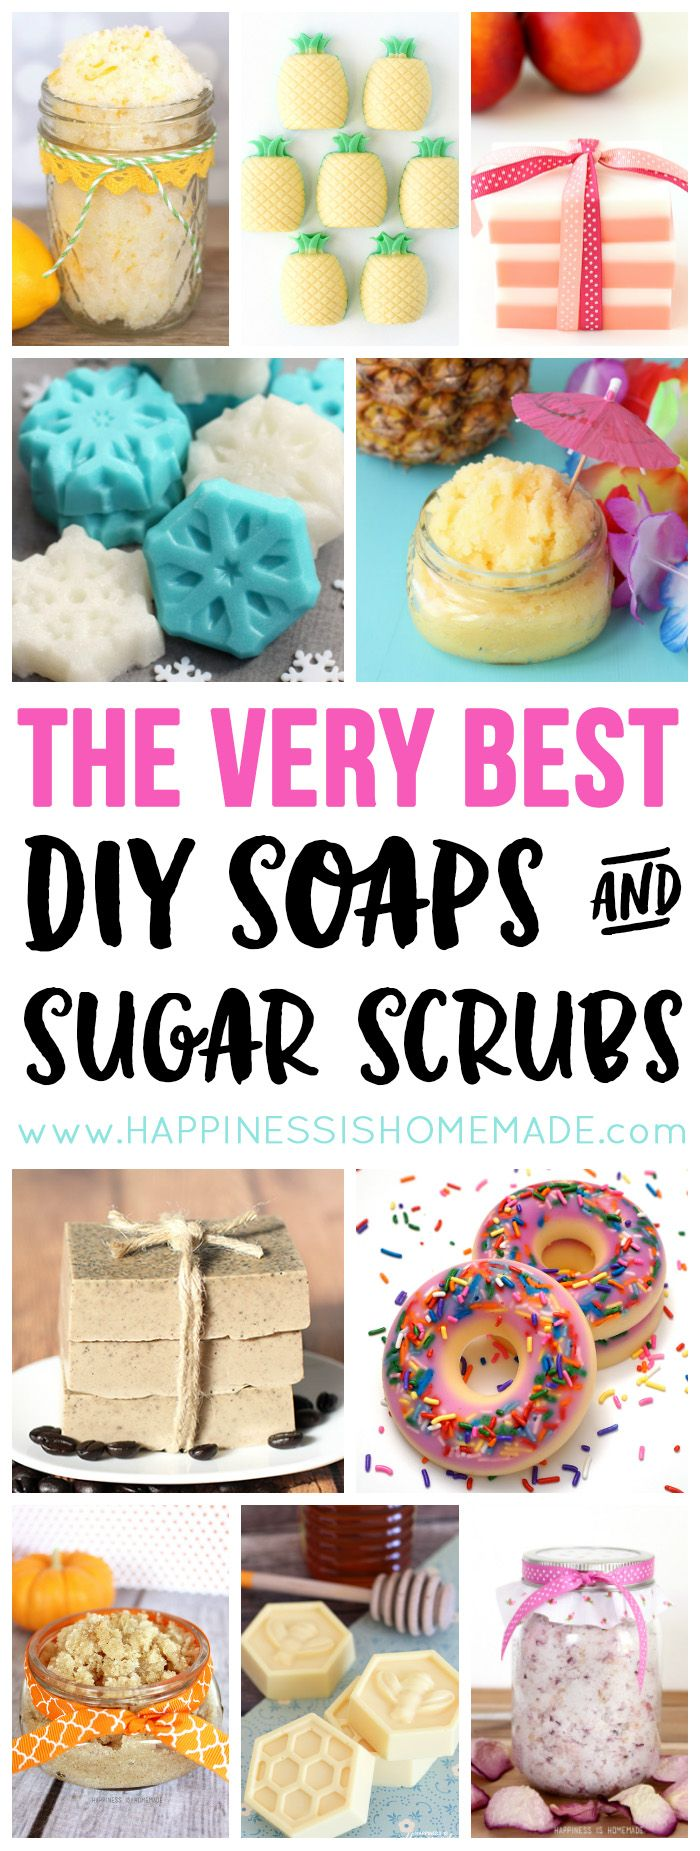 These quick, easy, and inexpensive DIY soaps and sugar scrub recipes are the best! They make fantastic homemade gift ideas - perfect for the holidays!                                                                                                                                                                                 More